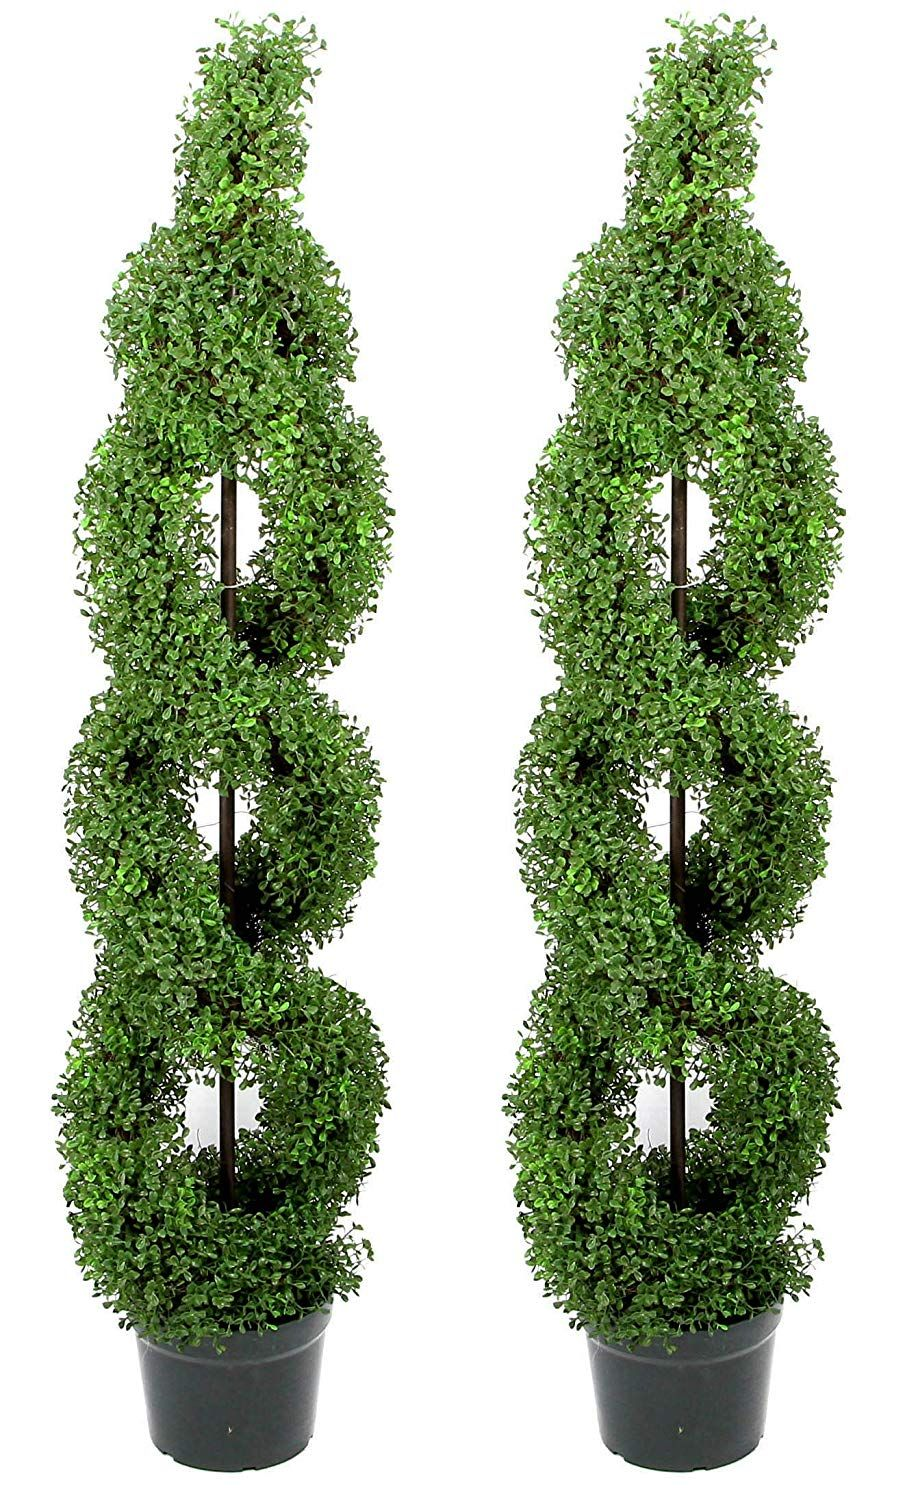 The 10 Best Artificial Topiary Trees For Decoration With Buying Guide Artificial Topiary Topiary Plants Topiary Trees